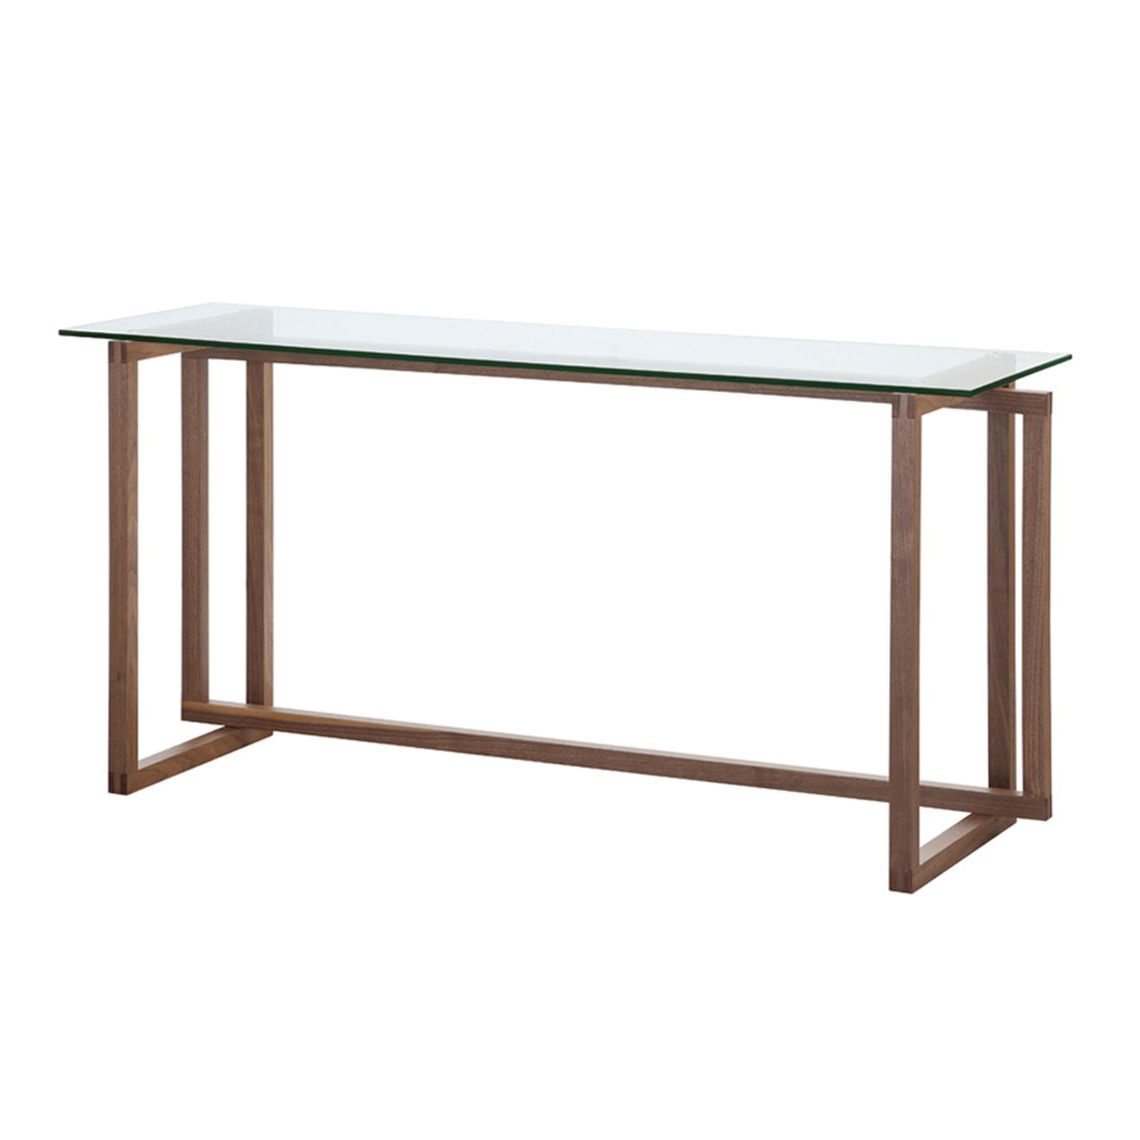 Kyra Console Table | Freedom Inside Kyra Console Tables (Gallery 2 of 20)